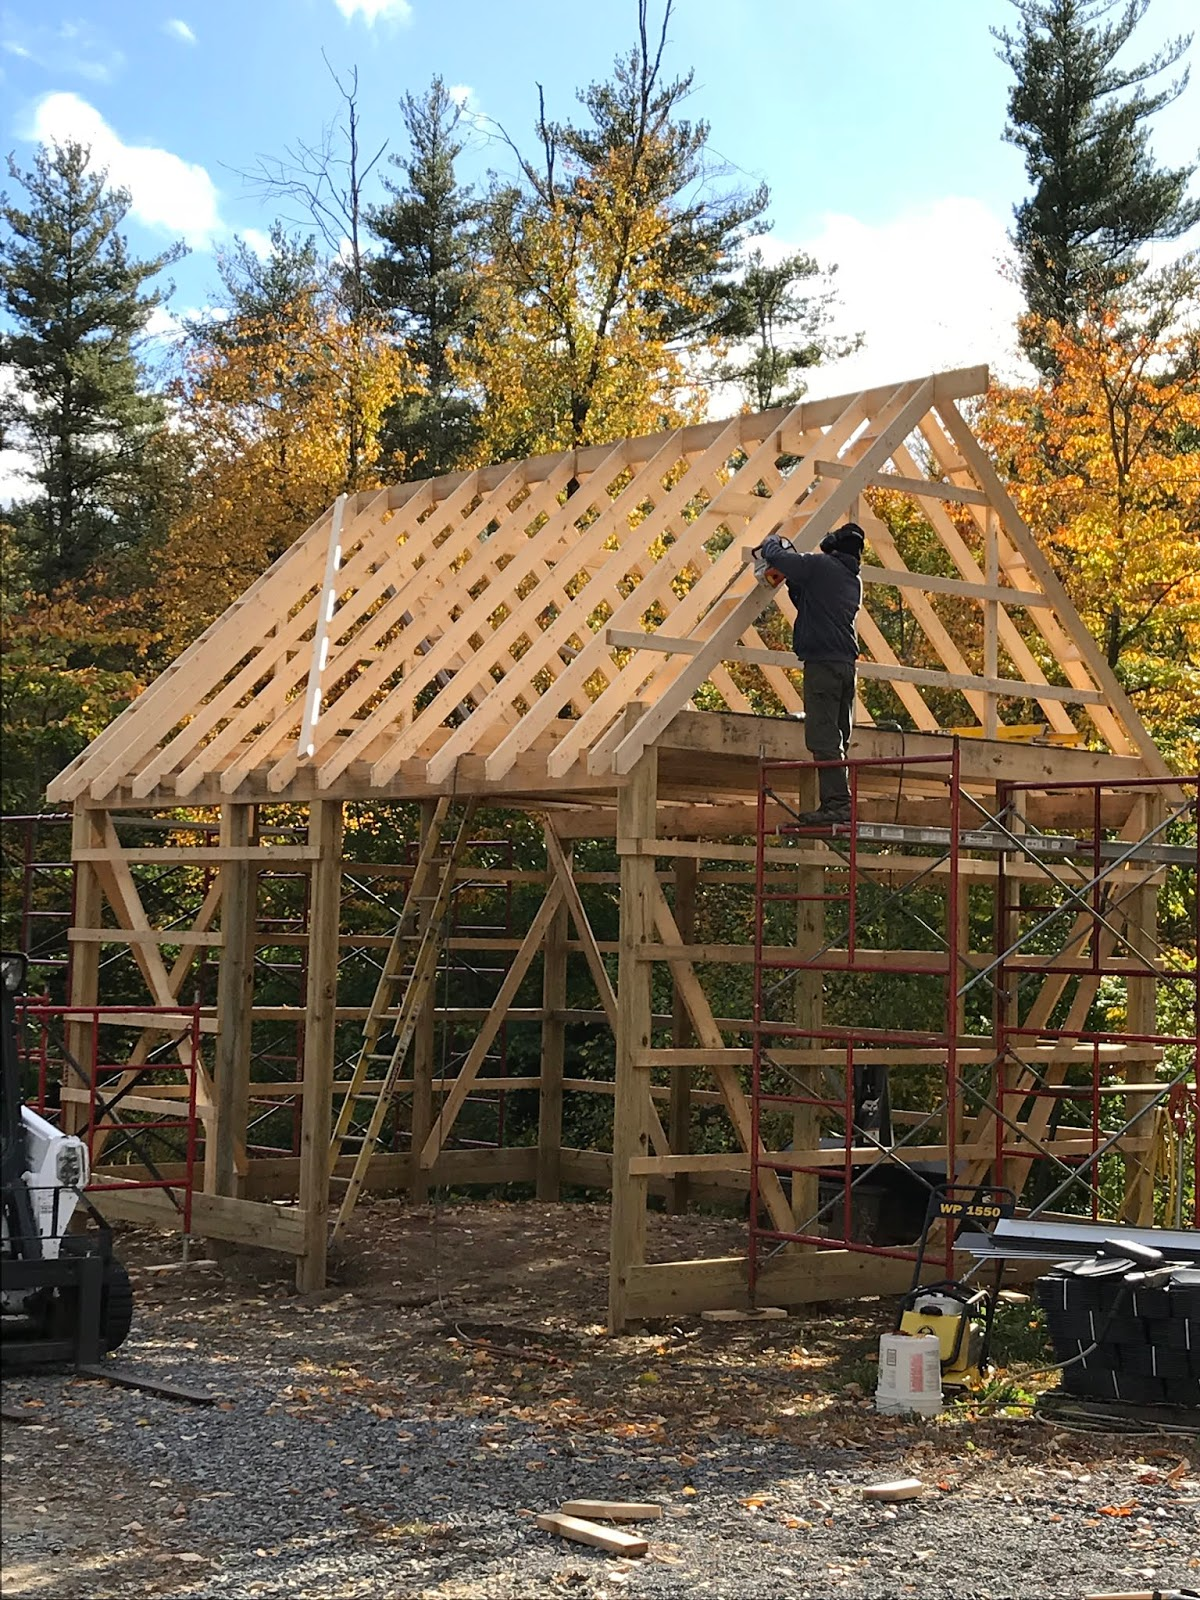 hight resolution of besides the rafter ties which jim doesn t want to put up yet the pole barn framing is all done